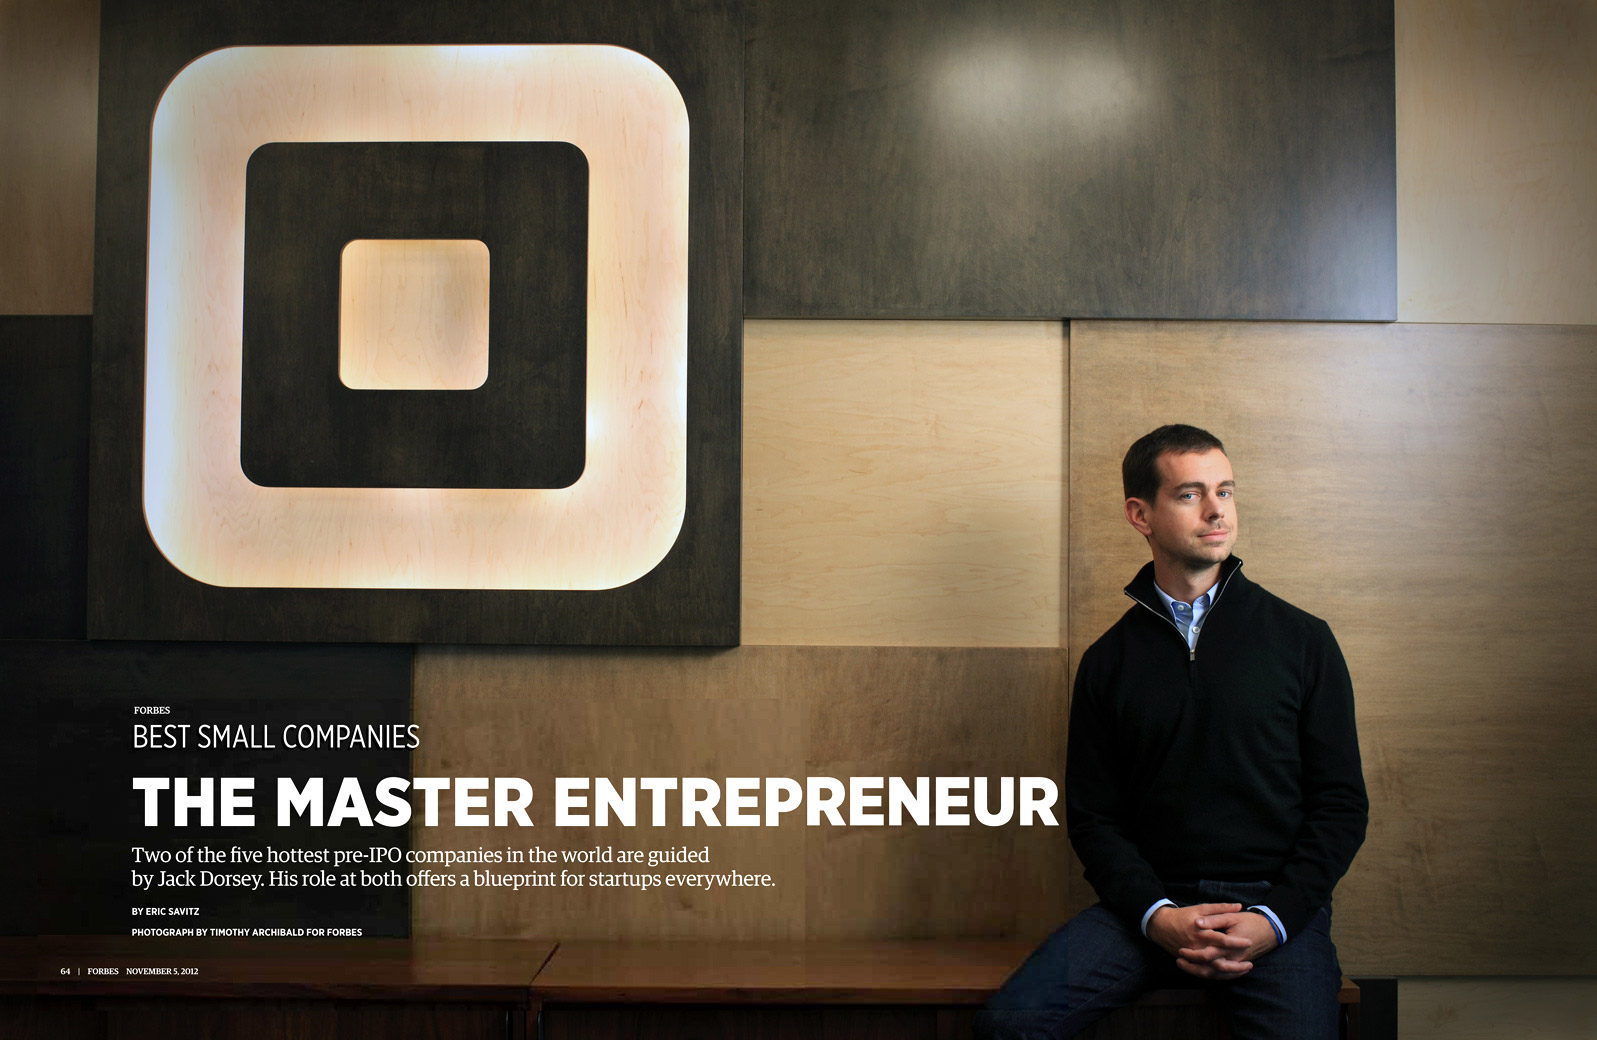 FORBES - JACK DORSEY